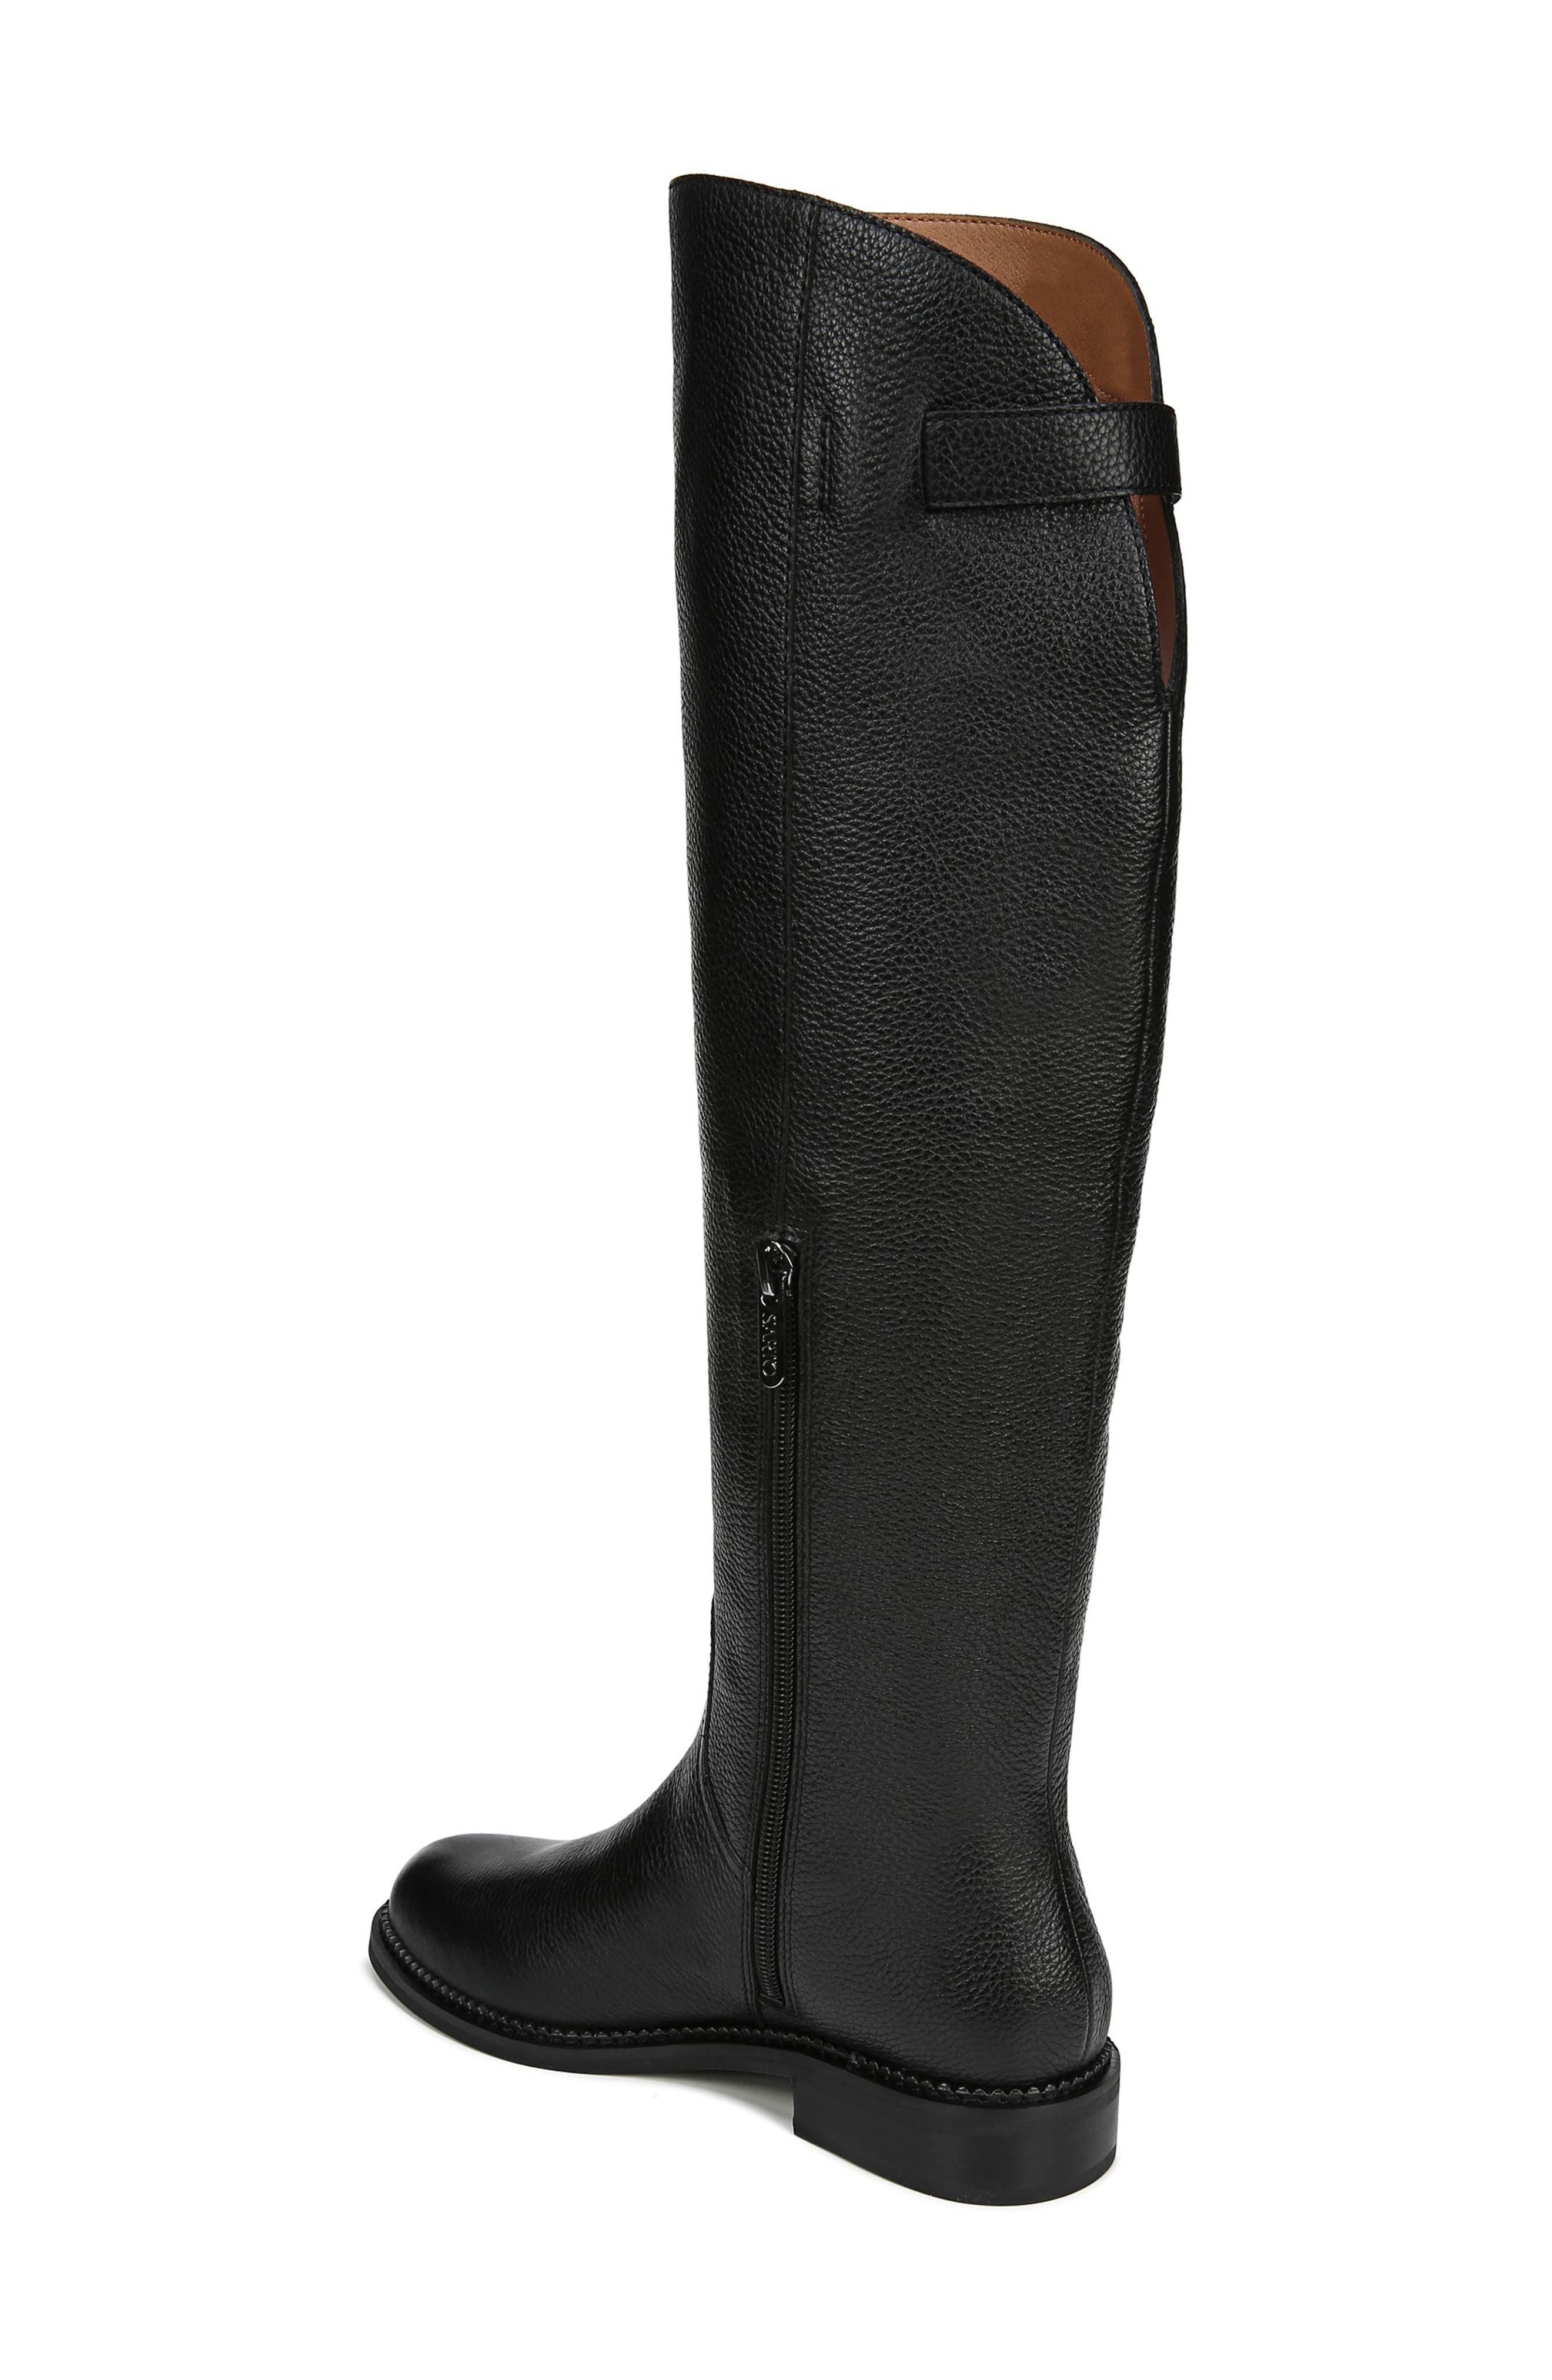 Halloway Knee High Boot,                             Alternate thumbnail 2, color,                             BLACK LEATHER